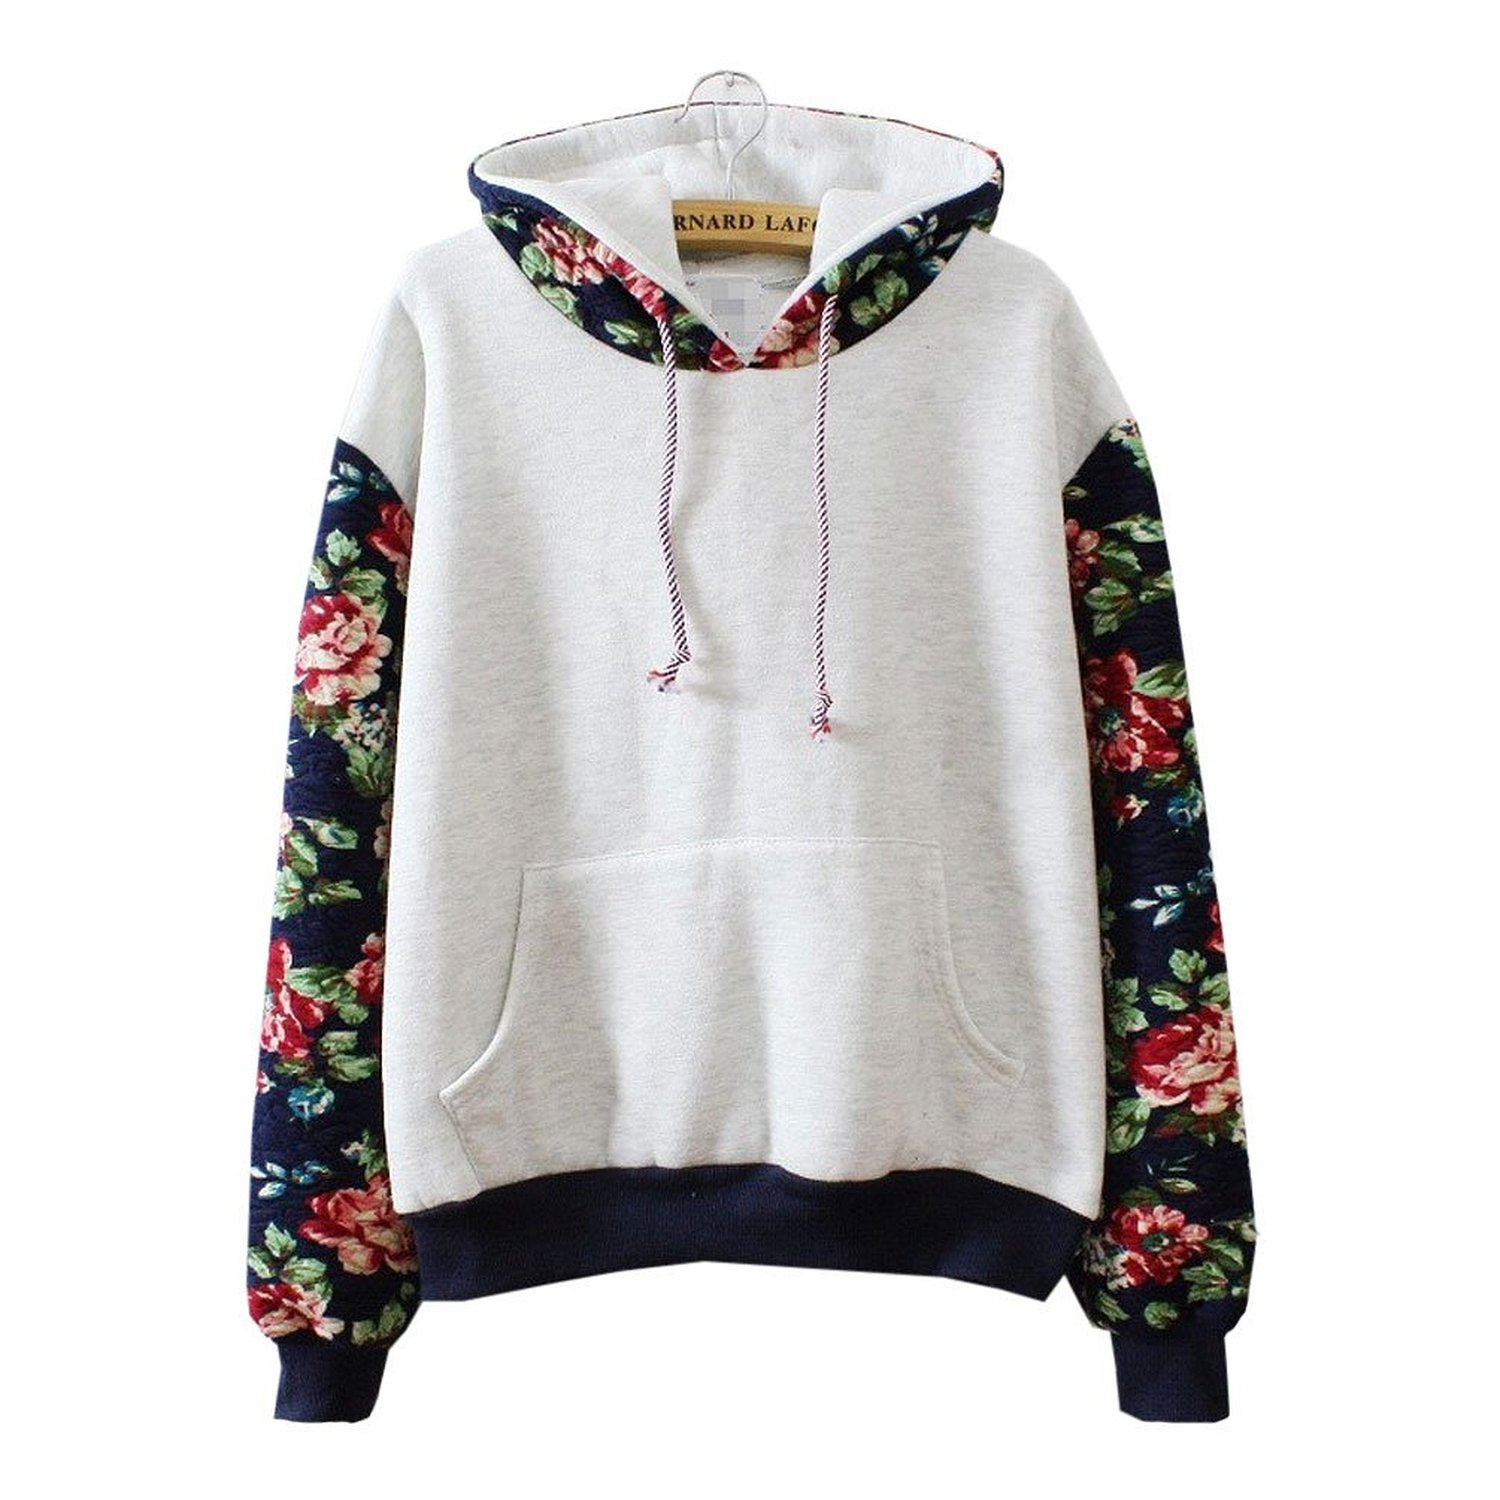 Hoodies Sweater Pullover Warm Fleece Lined Flowers Sleeve Grey ...